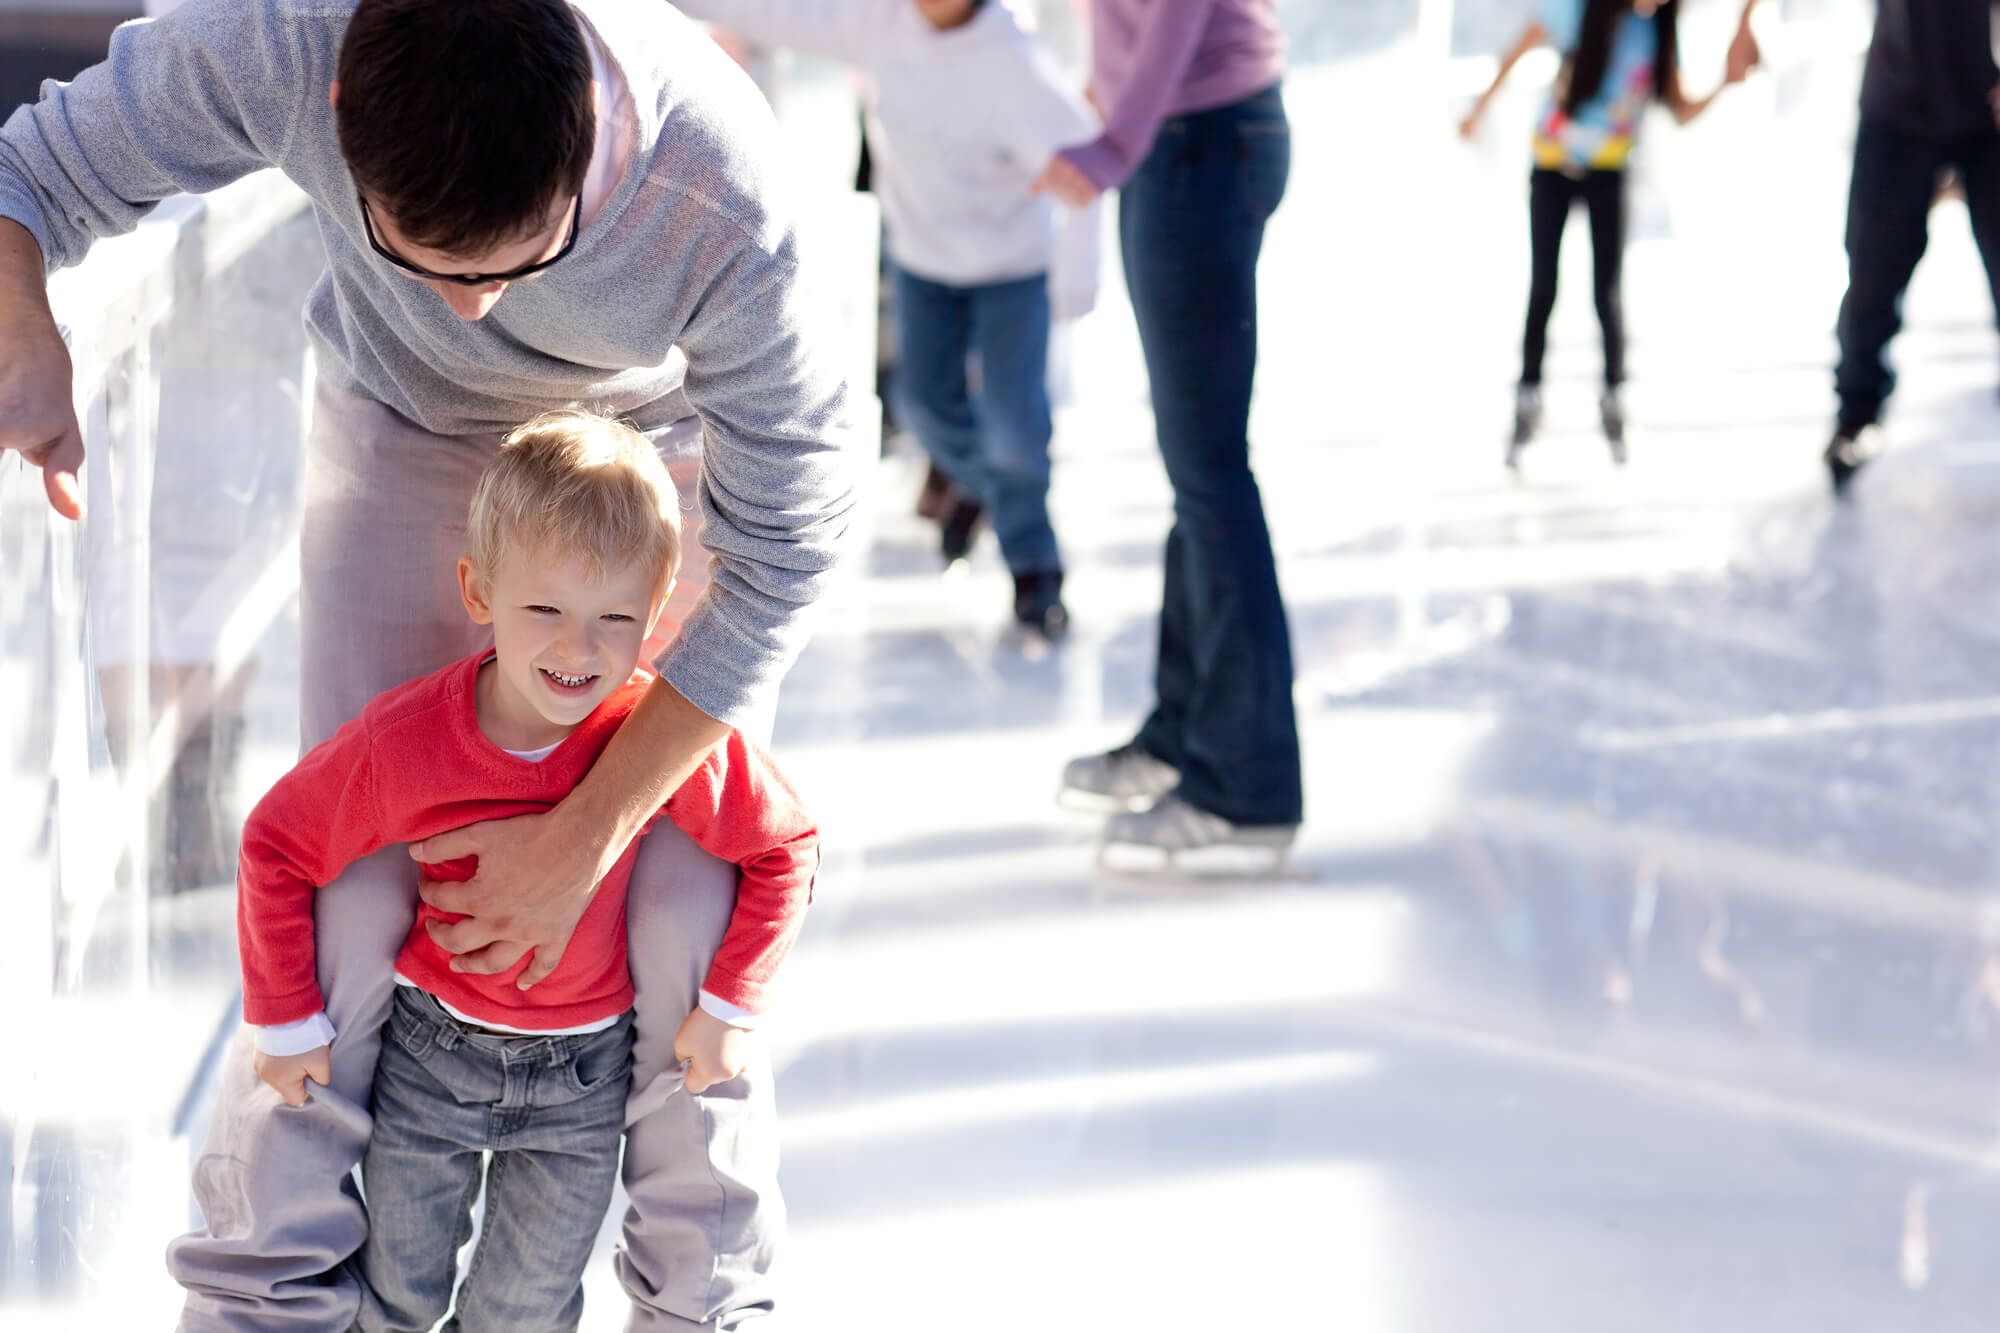 Places to Ice Skate Outdoors in the Rockford Area